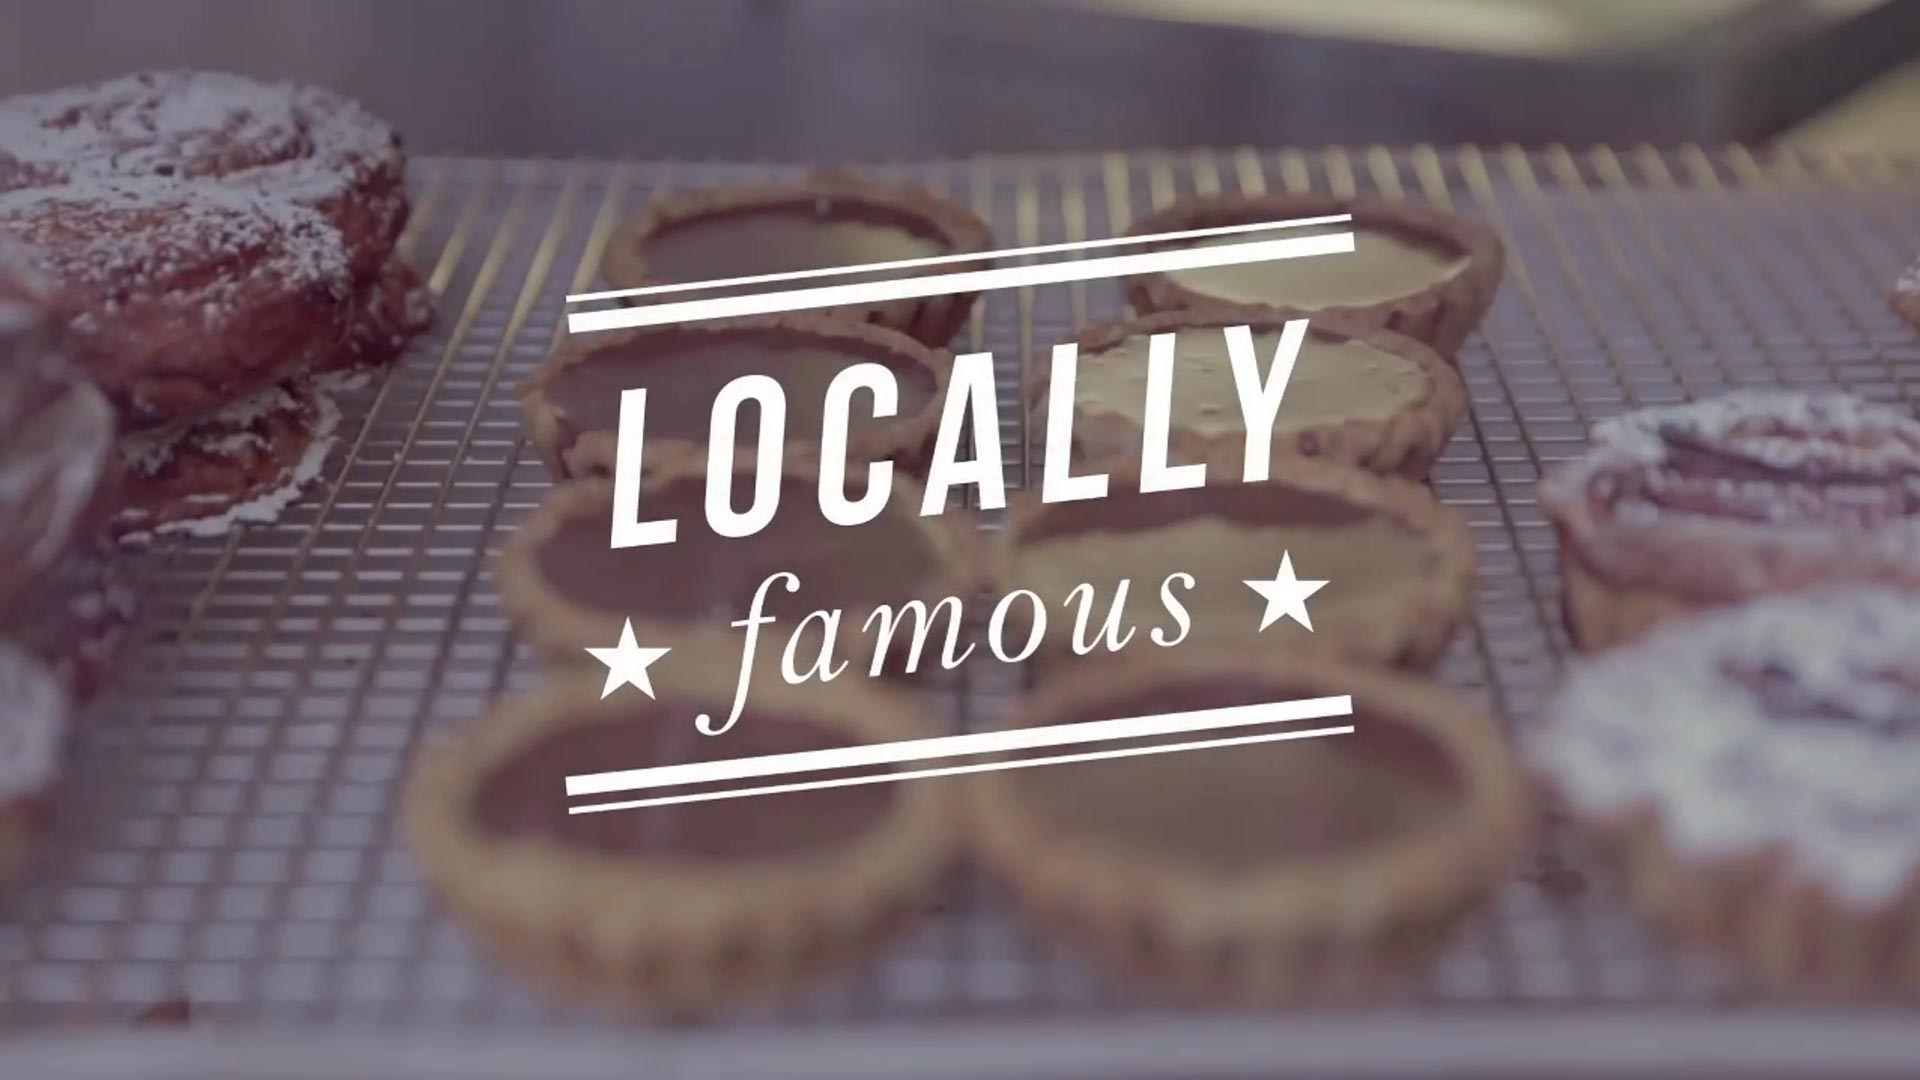 Mastercard – Locally Famous